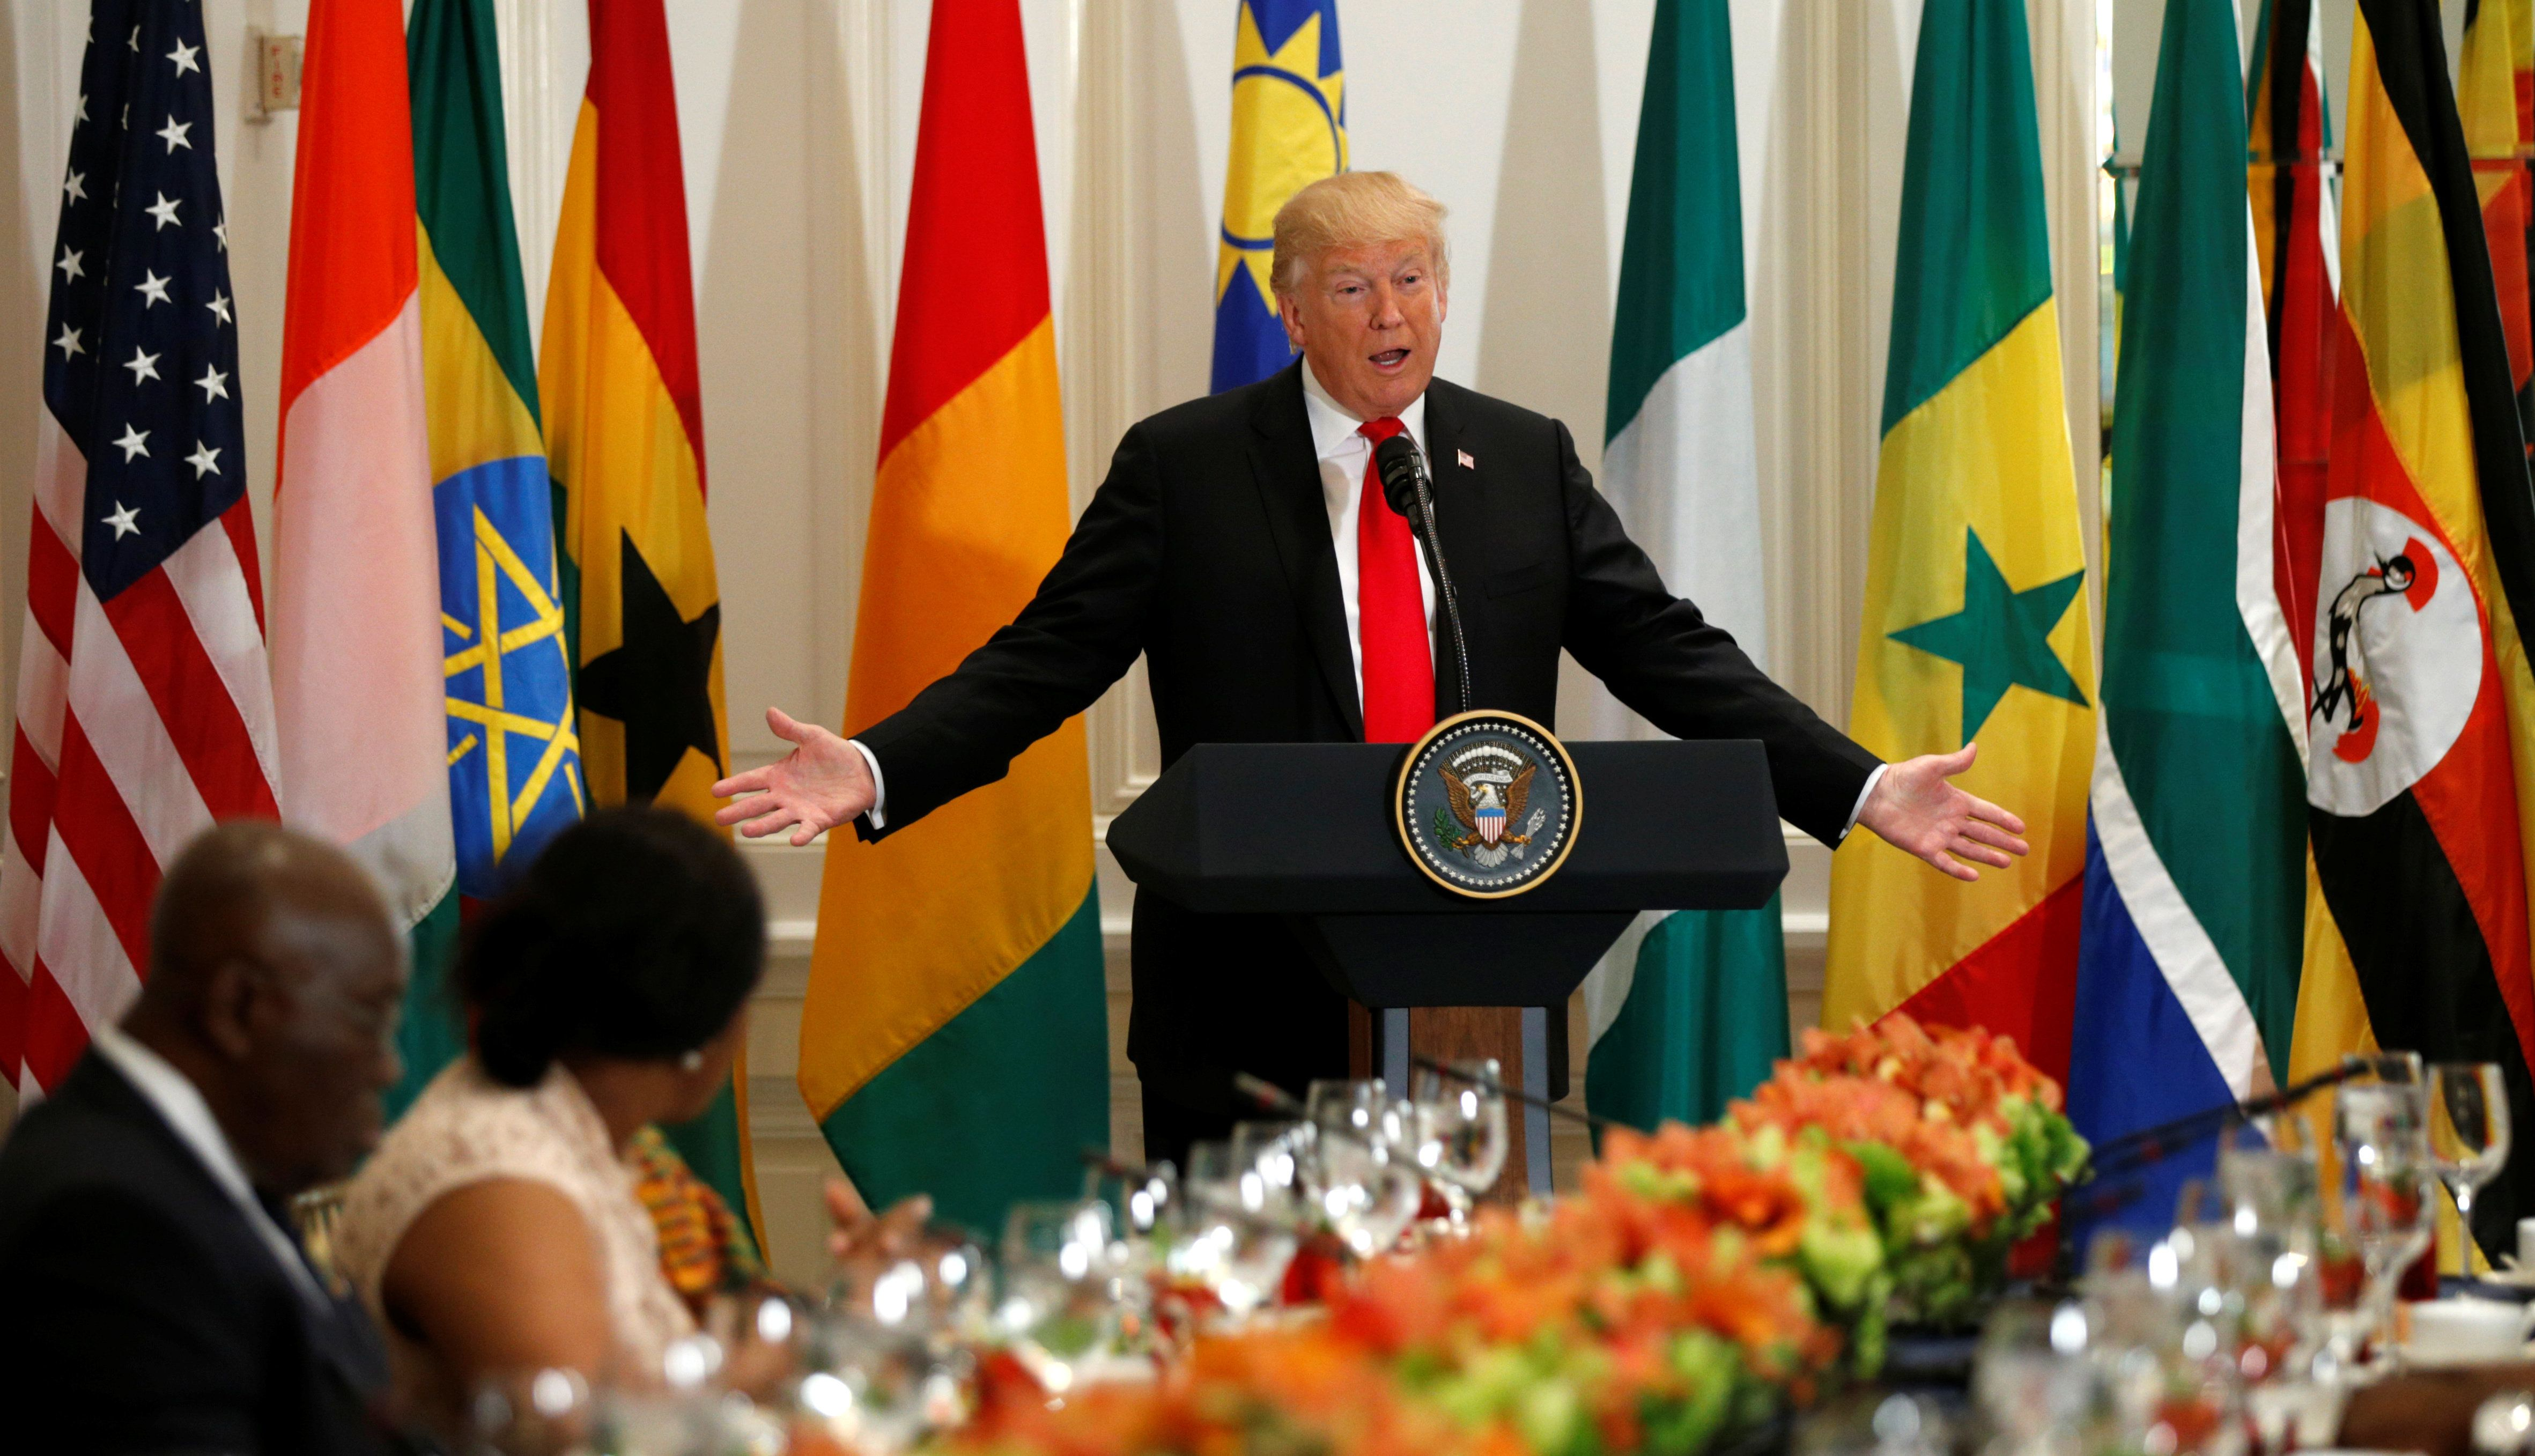 U.S. President Donald Trump speaks during a working lunch with African leaders during the U.N. General Assembly in New York, U.S., September 20, 2017. REUTERS/Kevin Lamarque